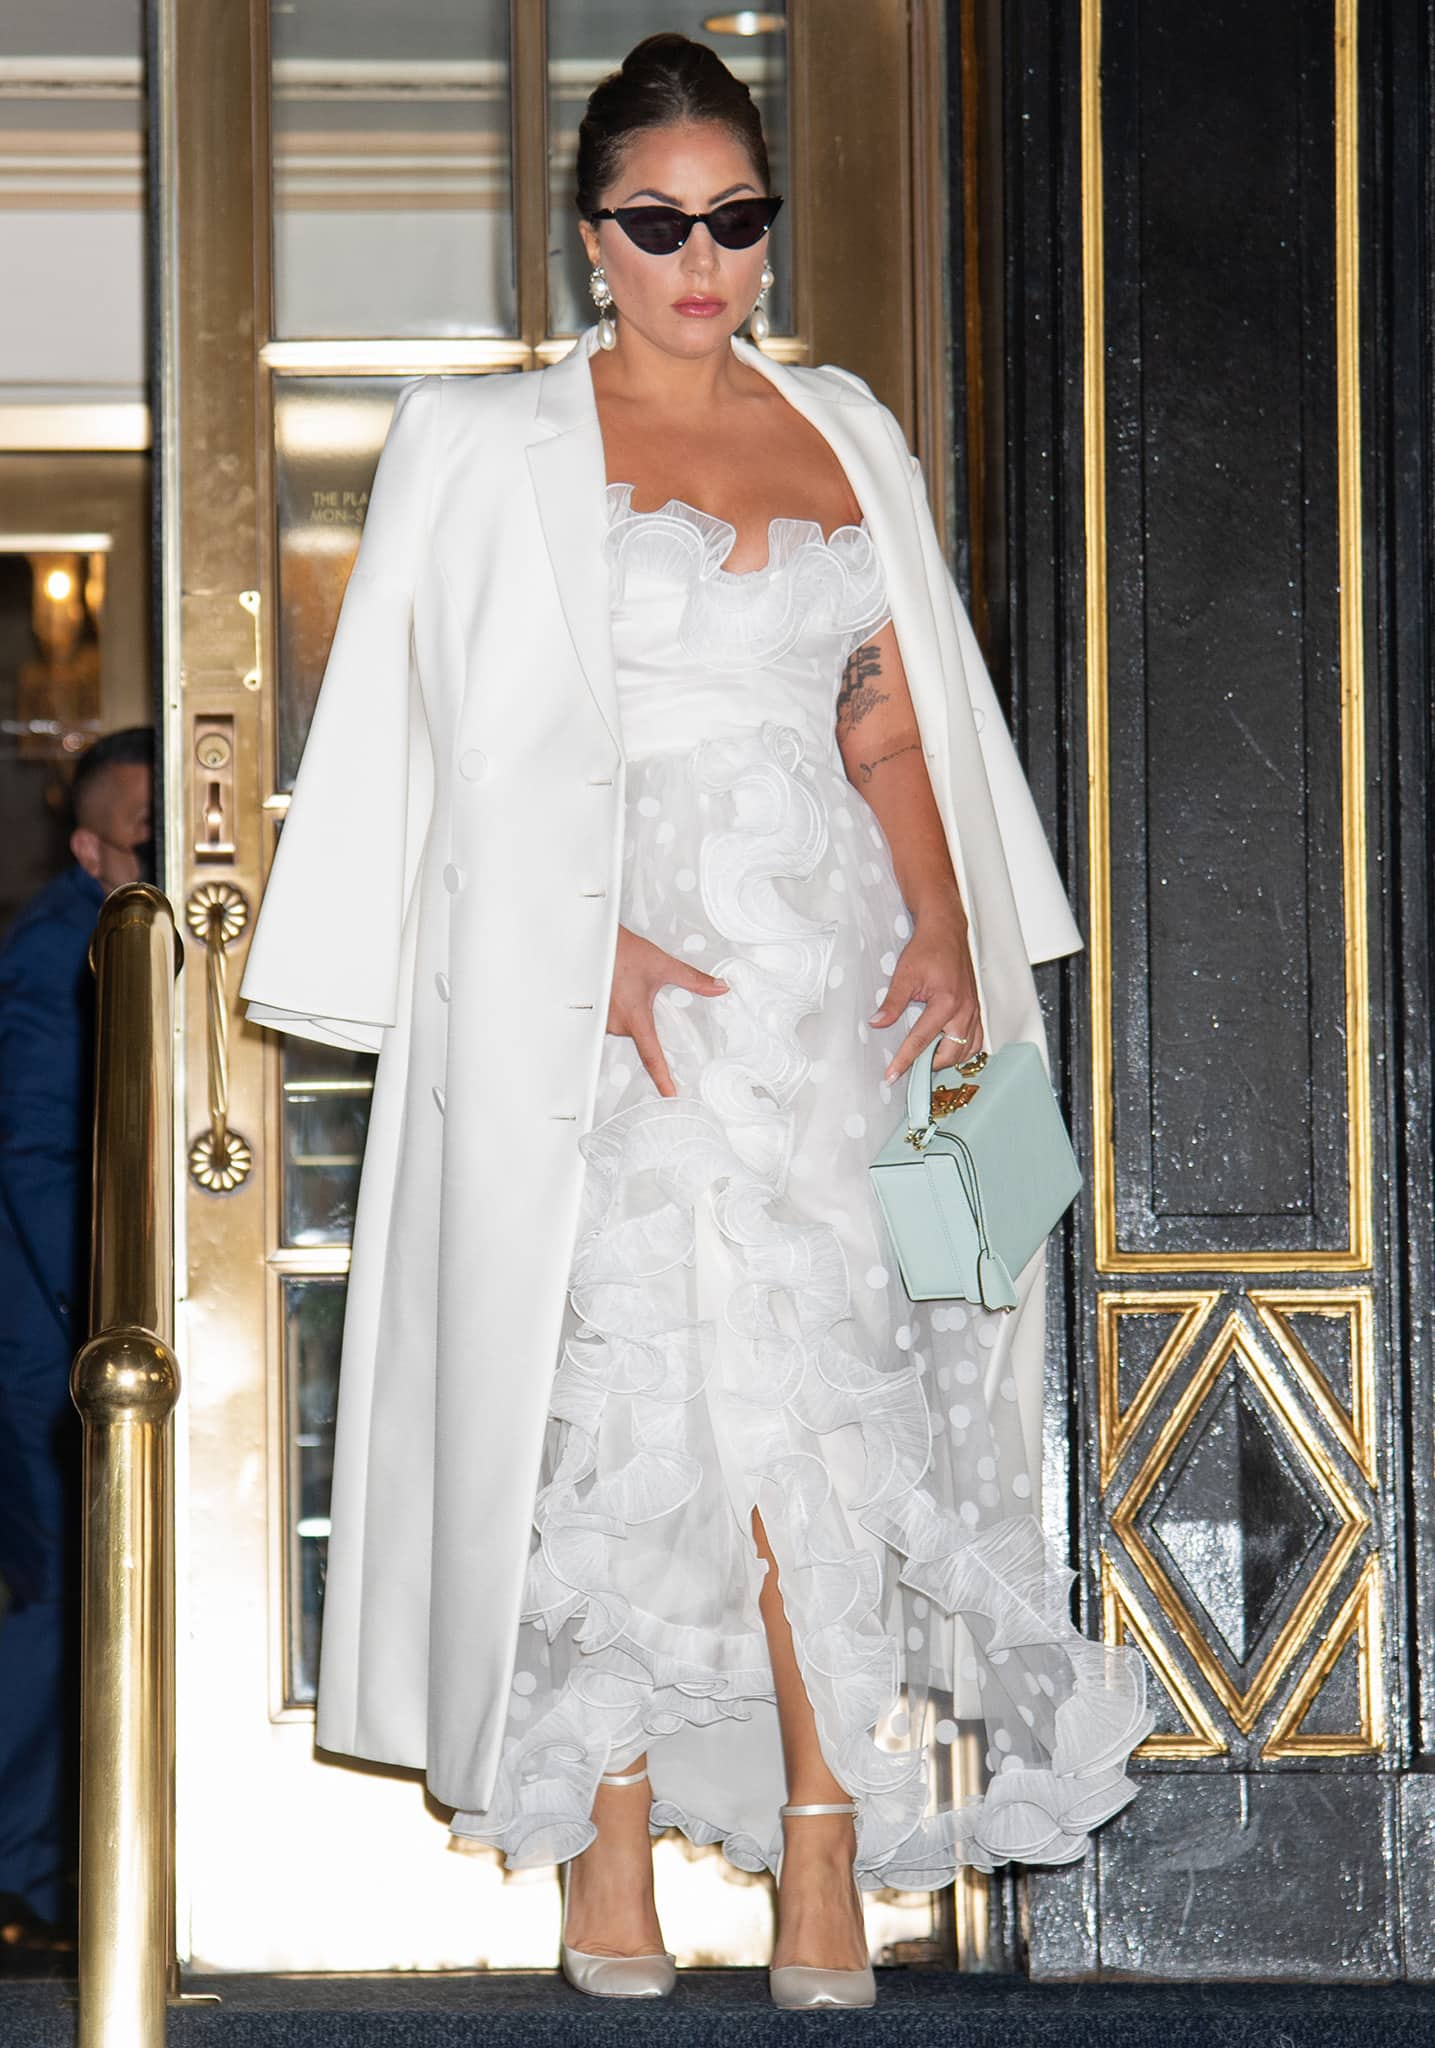 Lady Gaga exits Plaza Hotel in bridal white gown on July 1, 2021